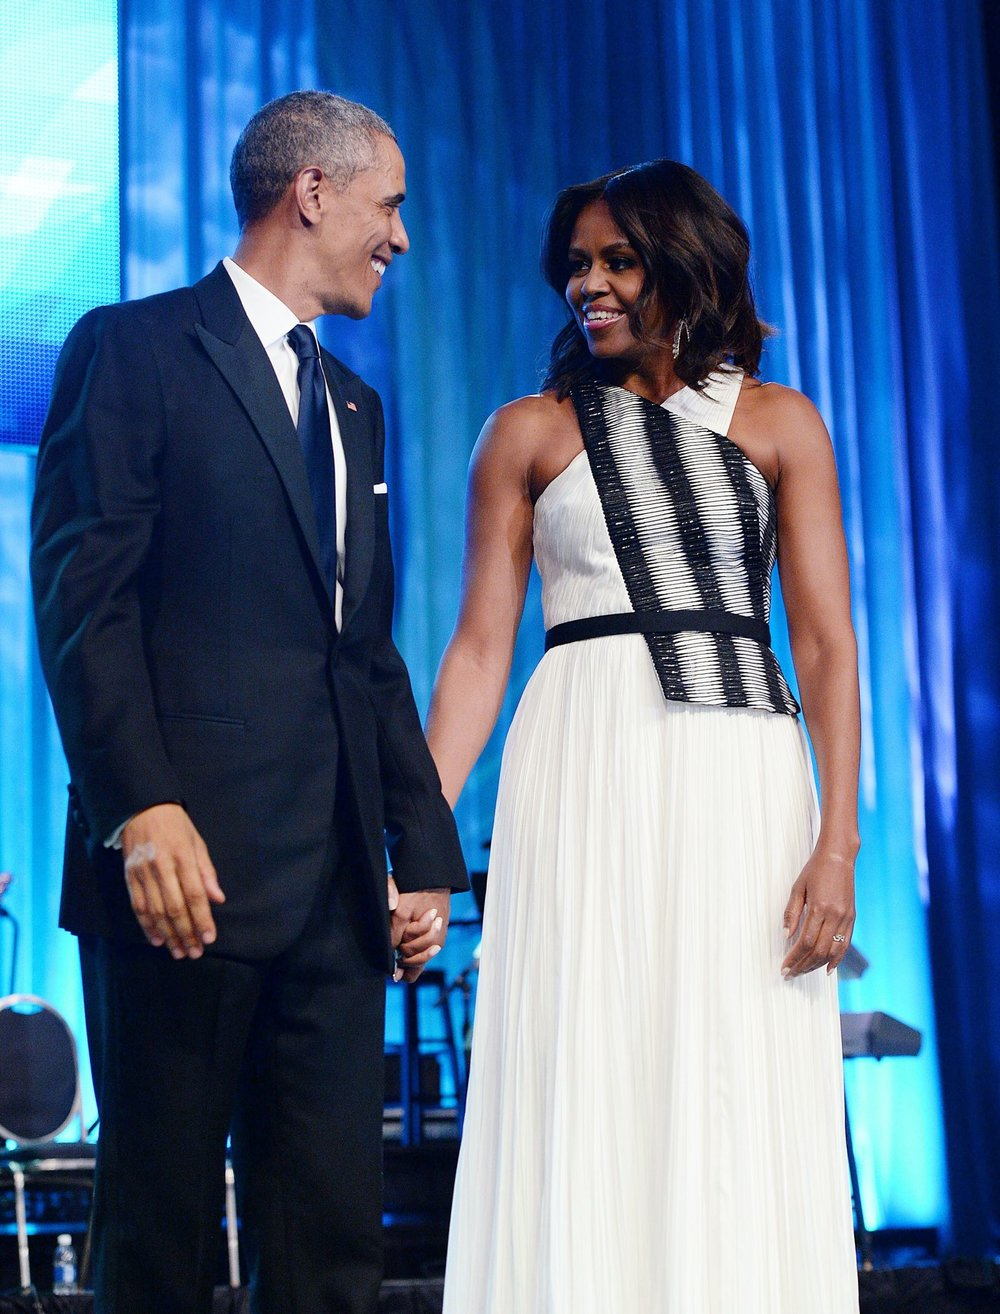 Per usual FLOTUS gave us life at the Black Caucus Foundation Dinner in graphic print bodius Bibhu Mohapatra Gown.